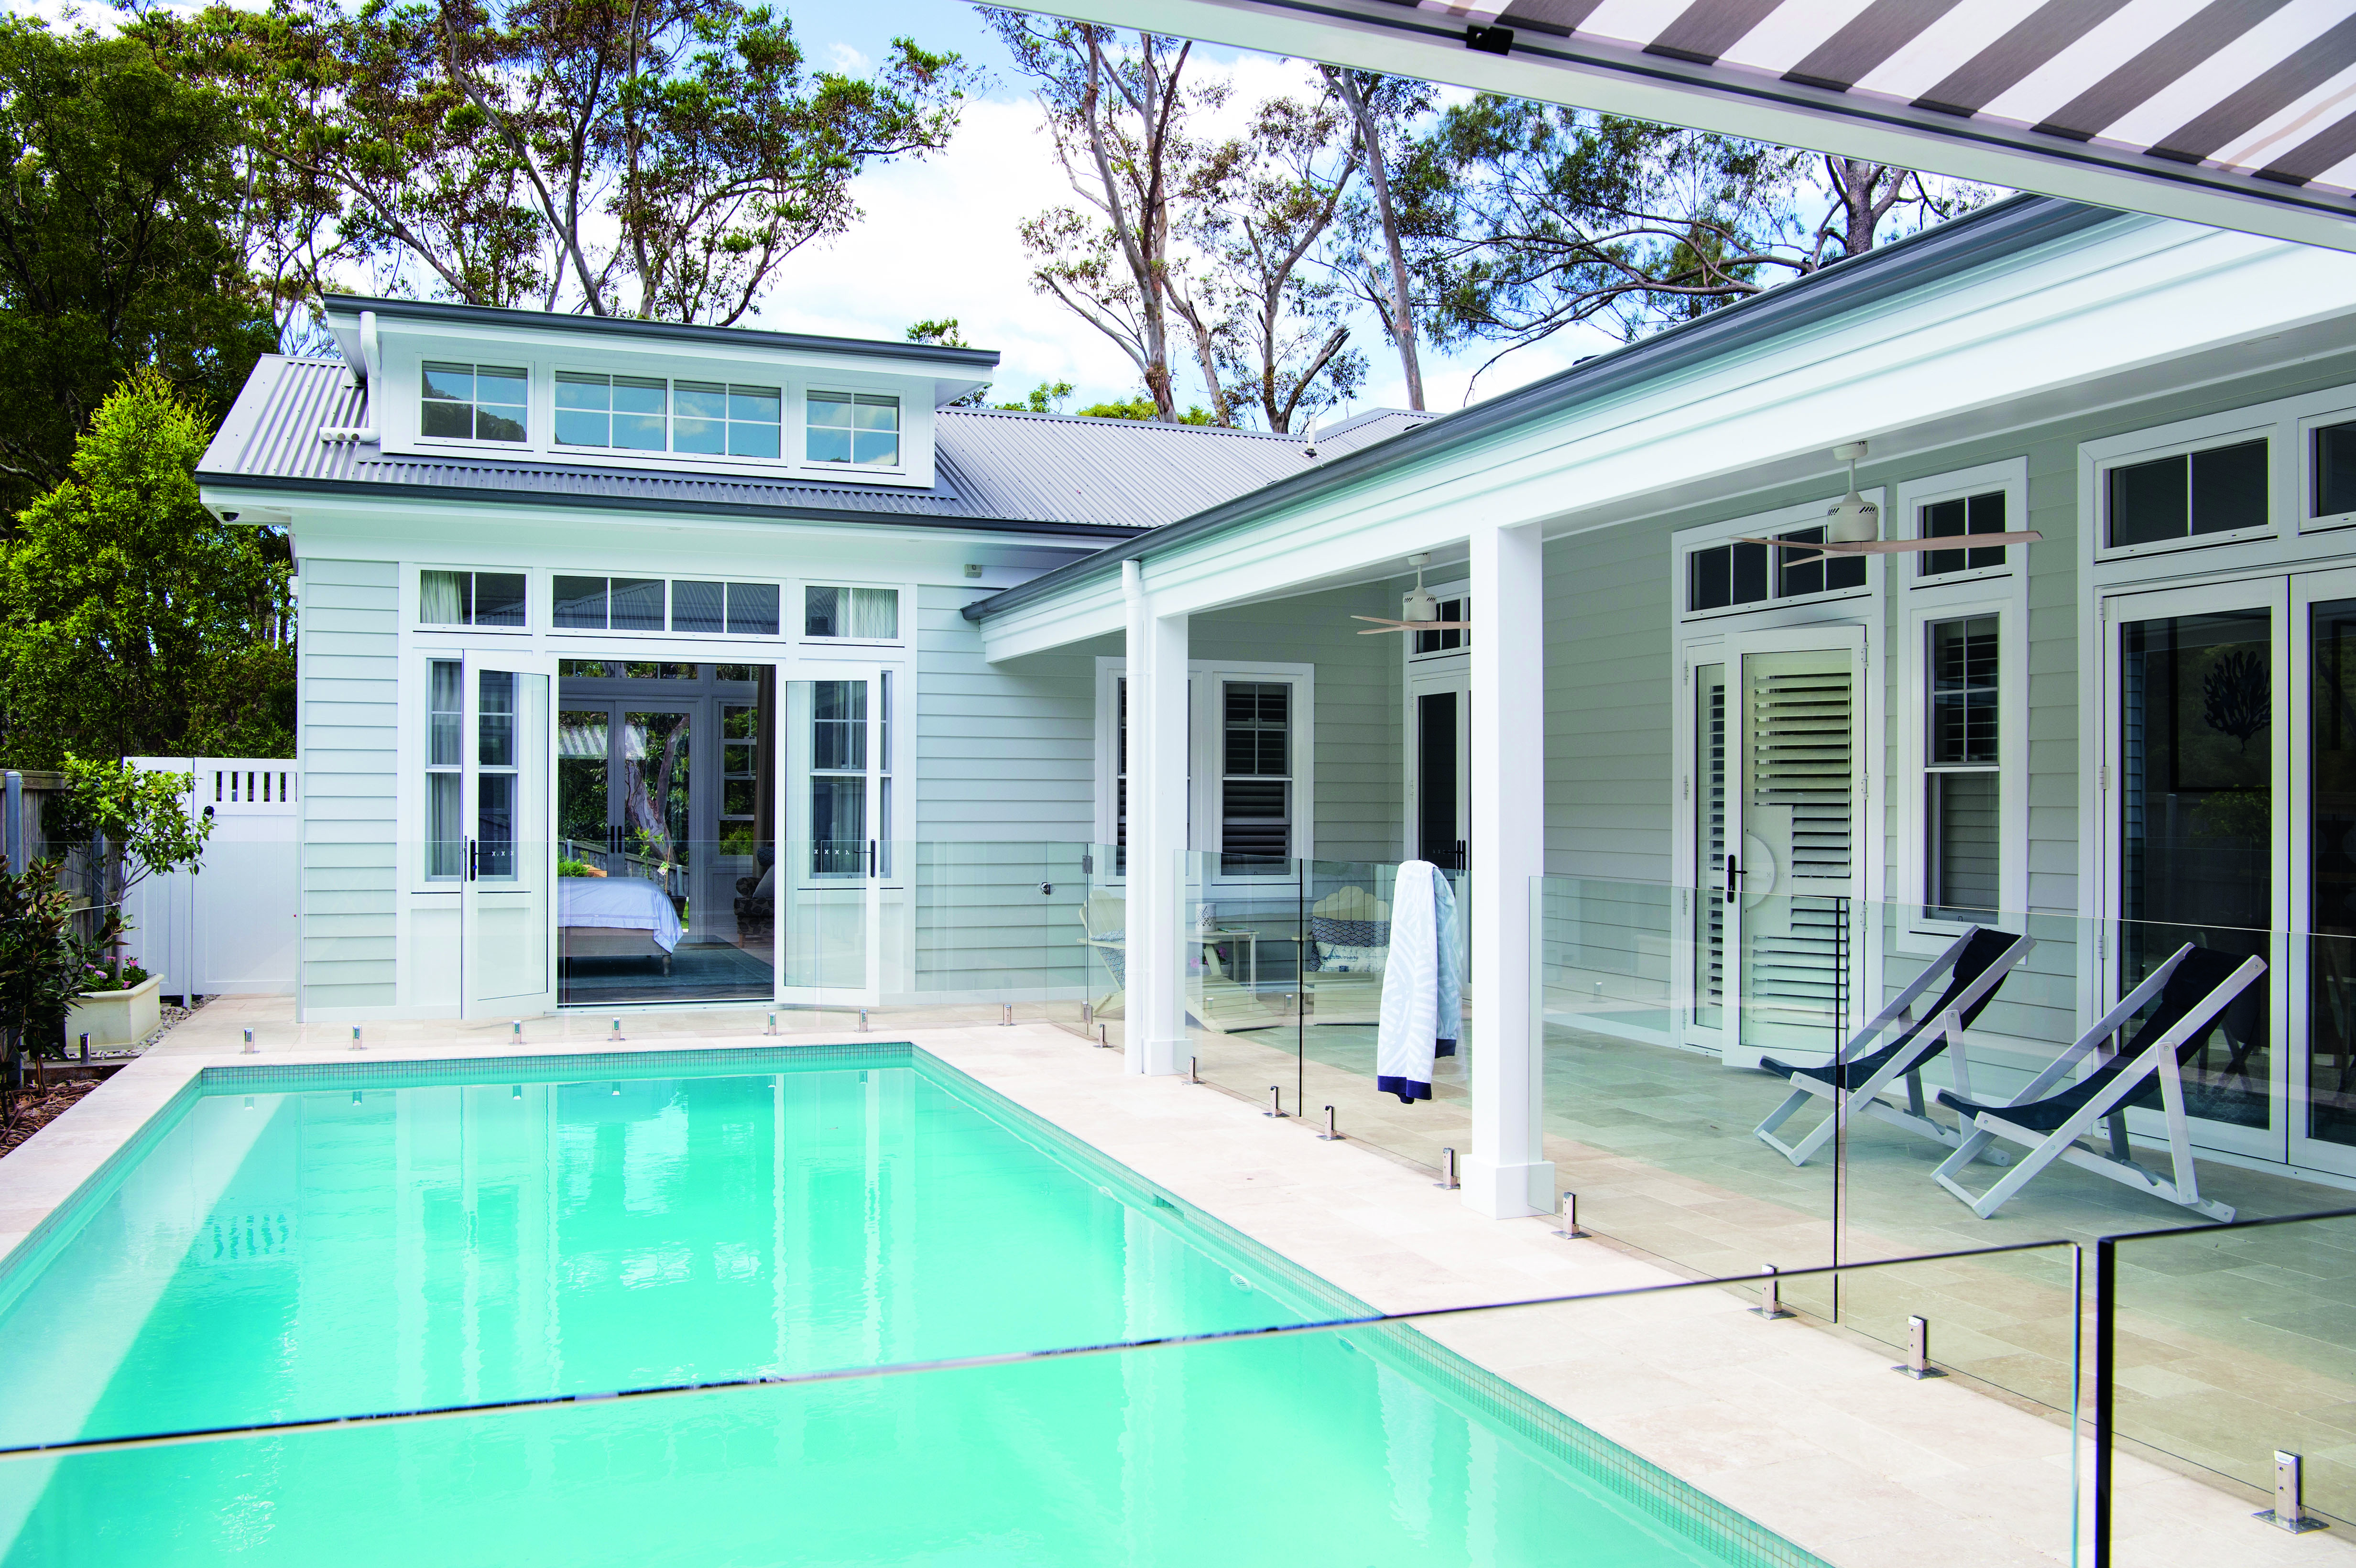 Classic design, modern build: an authentic Hamptons haven